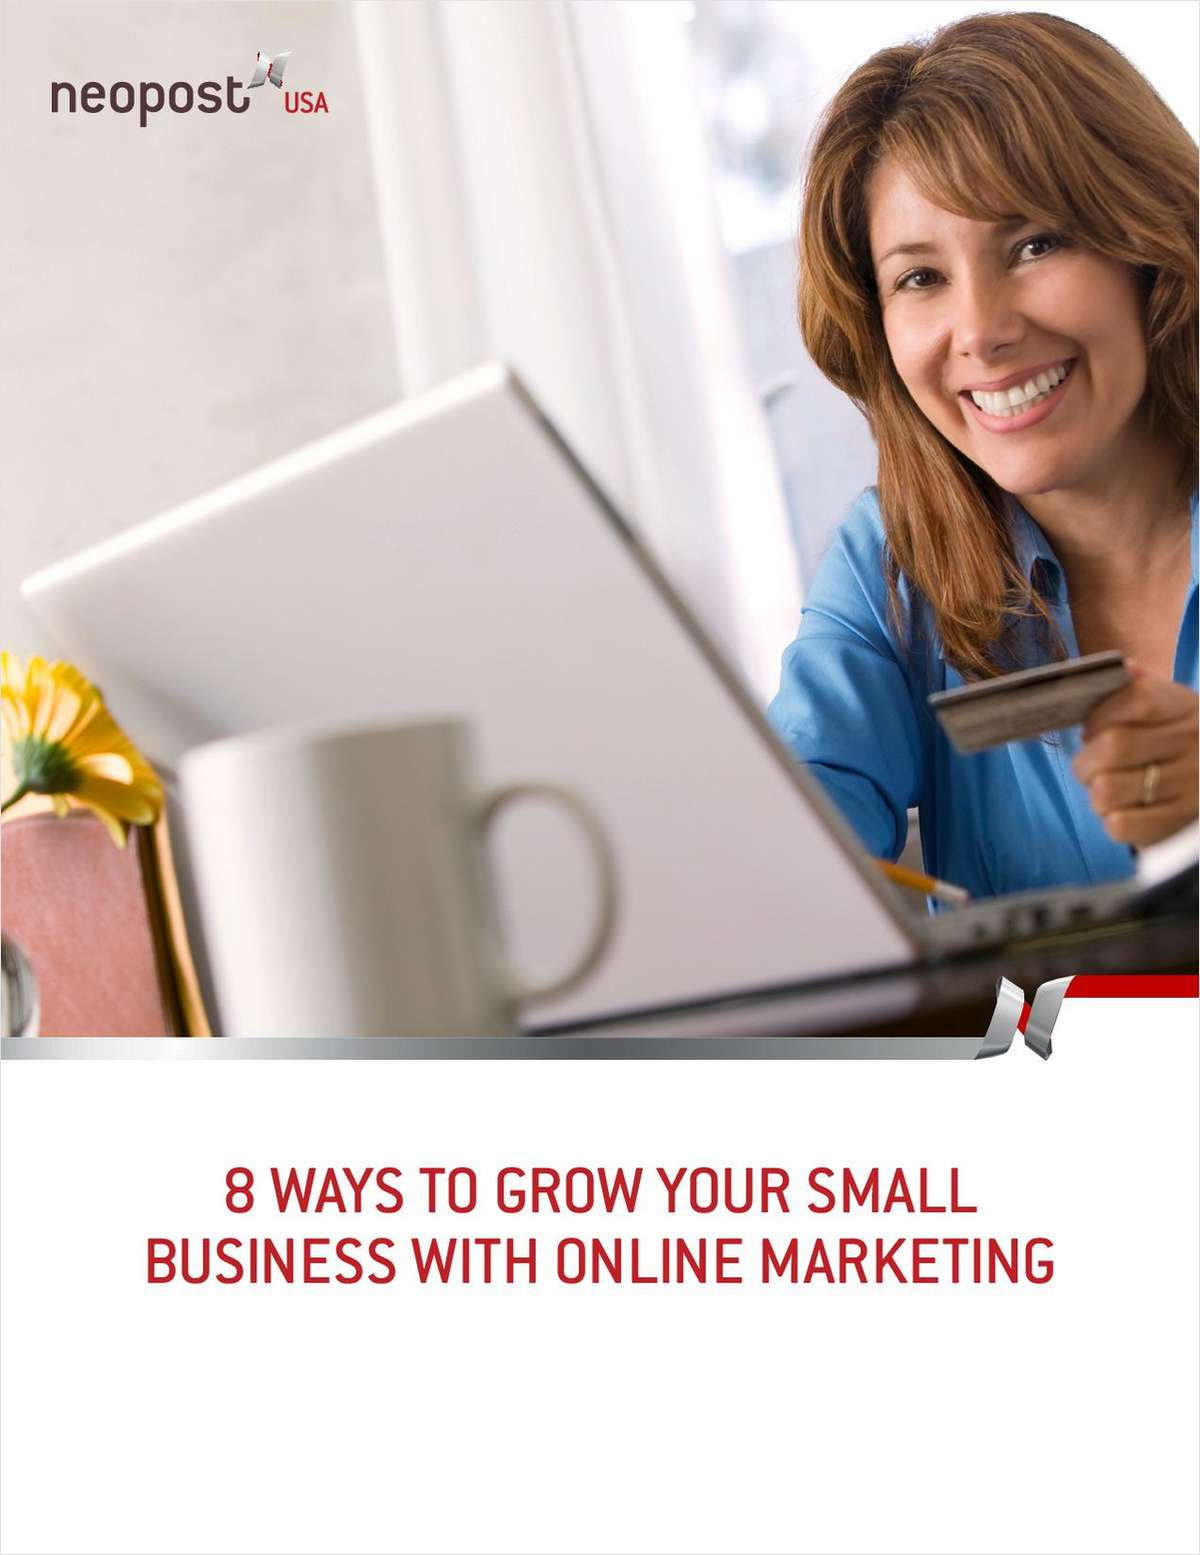 8 Ways to Grow Your Small Business with Online Marketing